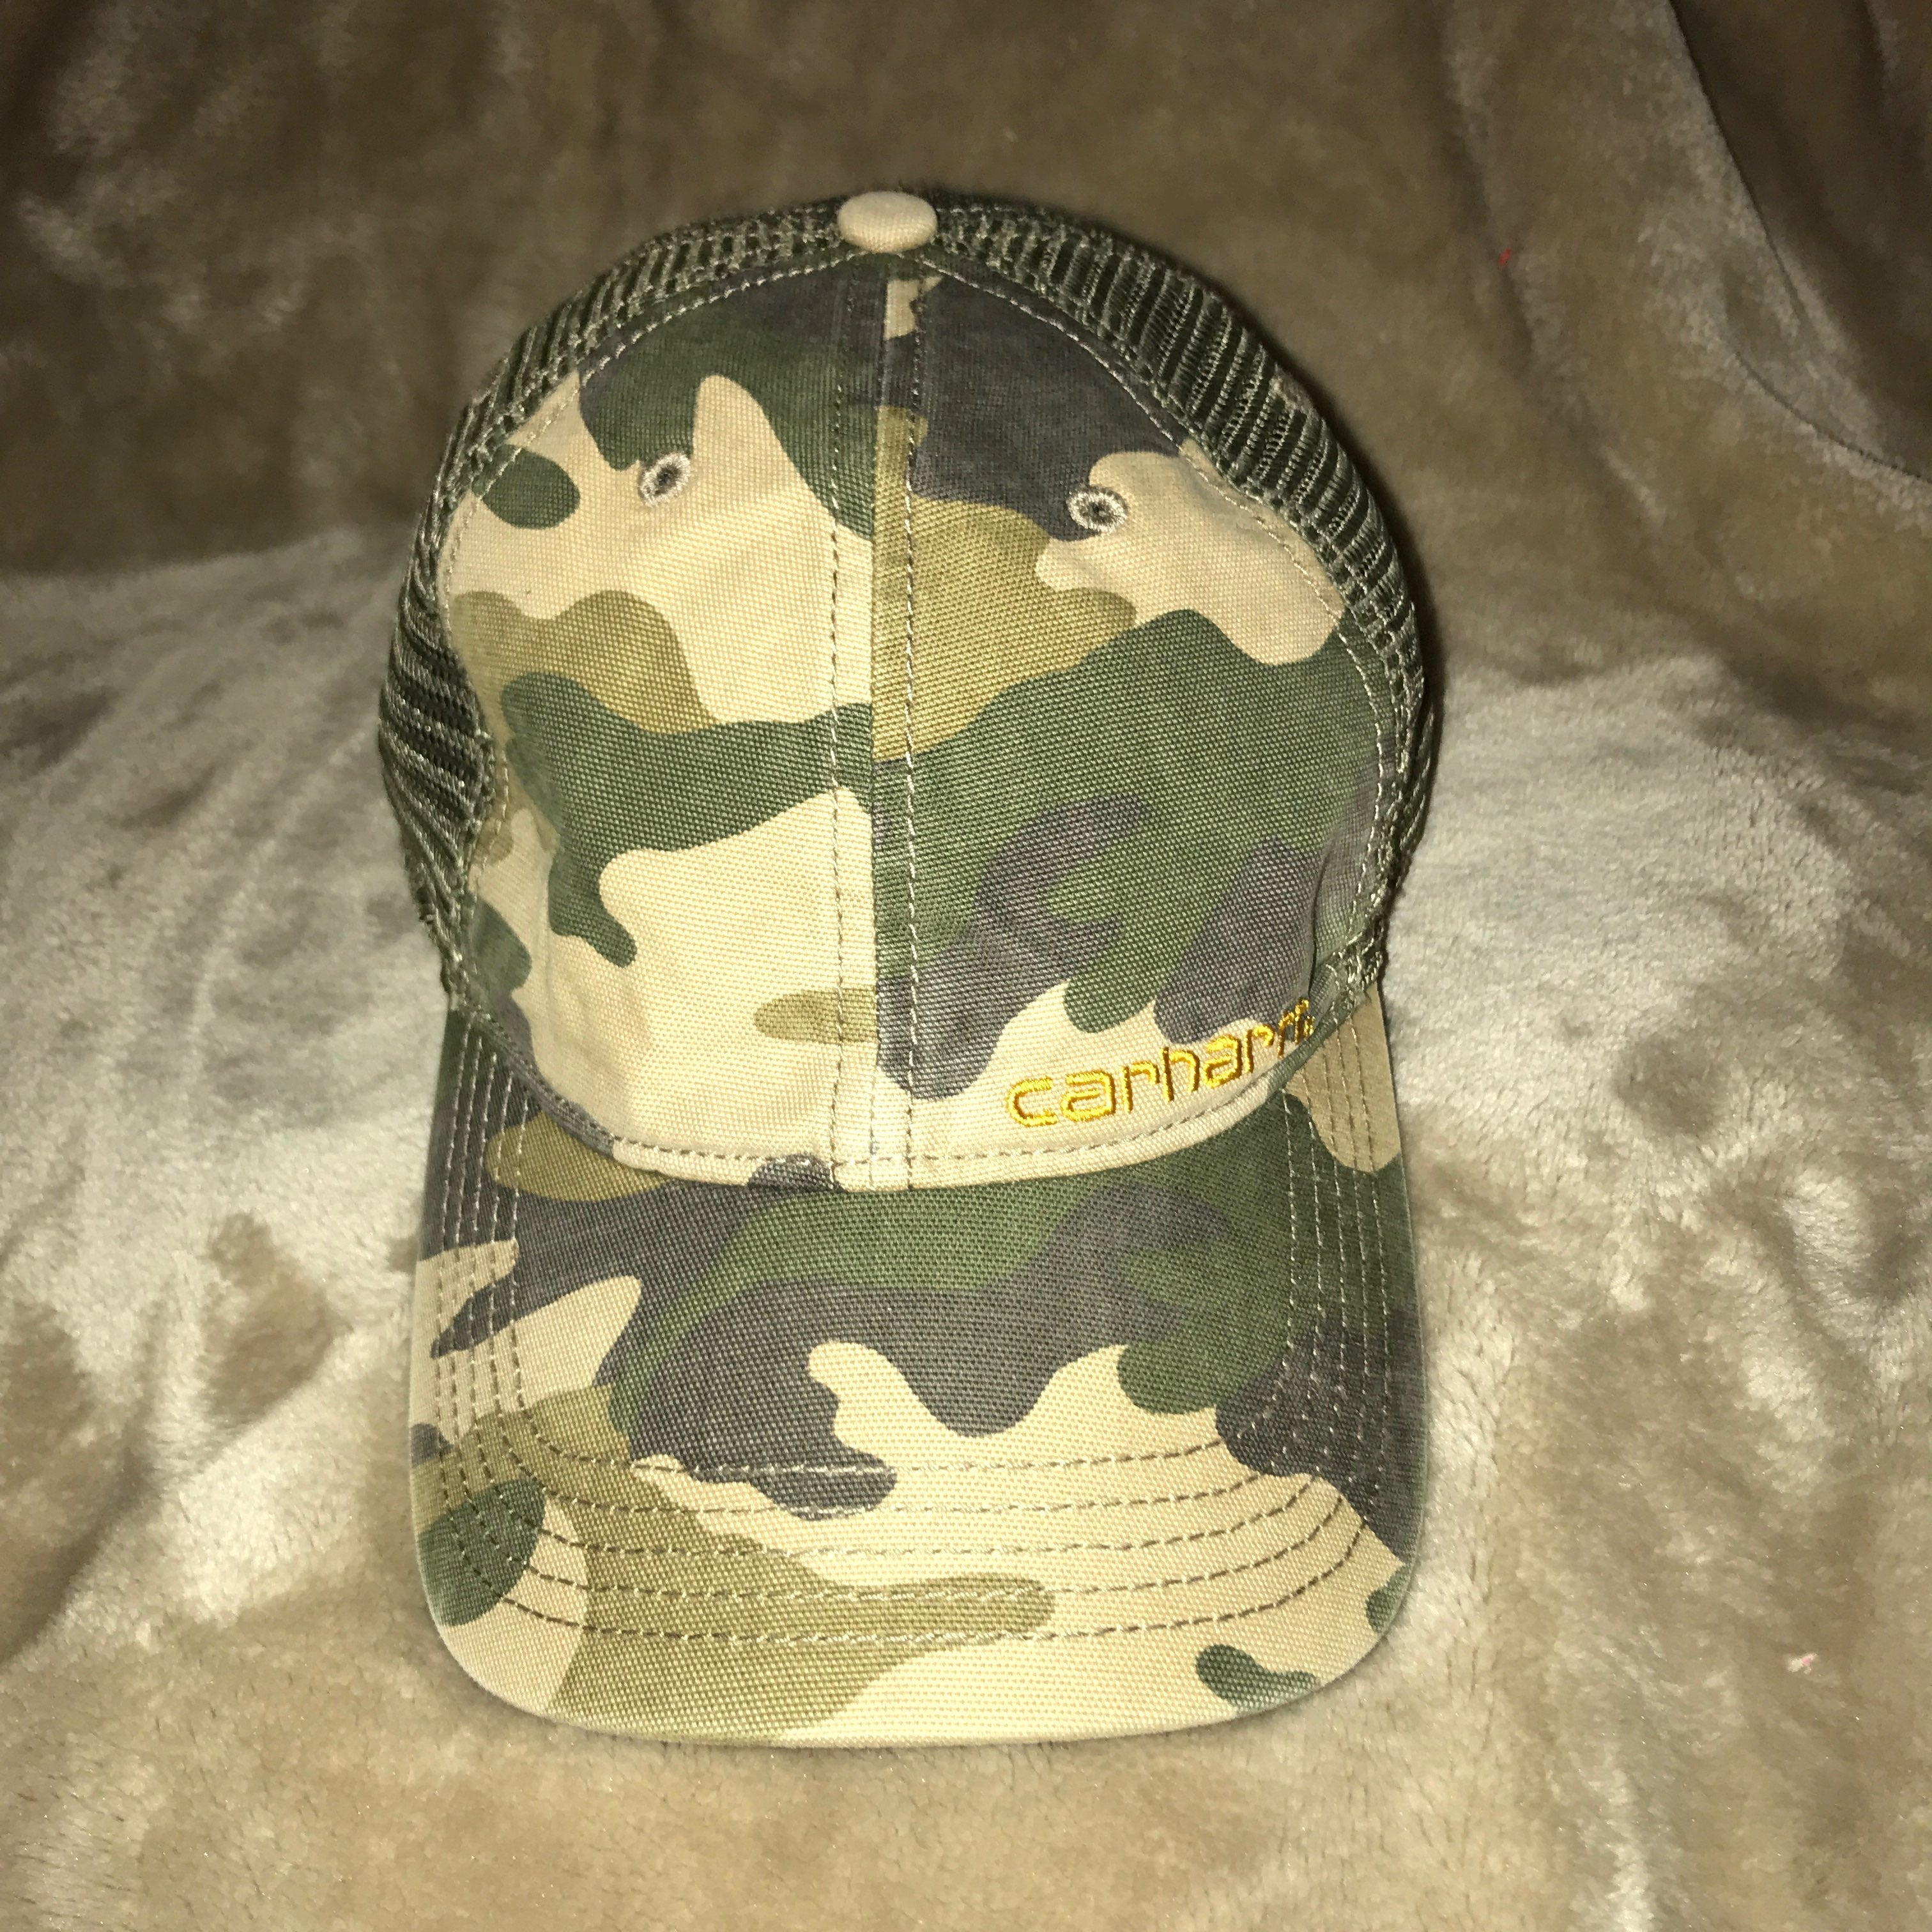 NEW CARHARTT CAMO HAT! ONE SIZE FITS ALL